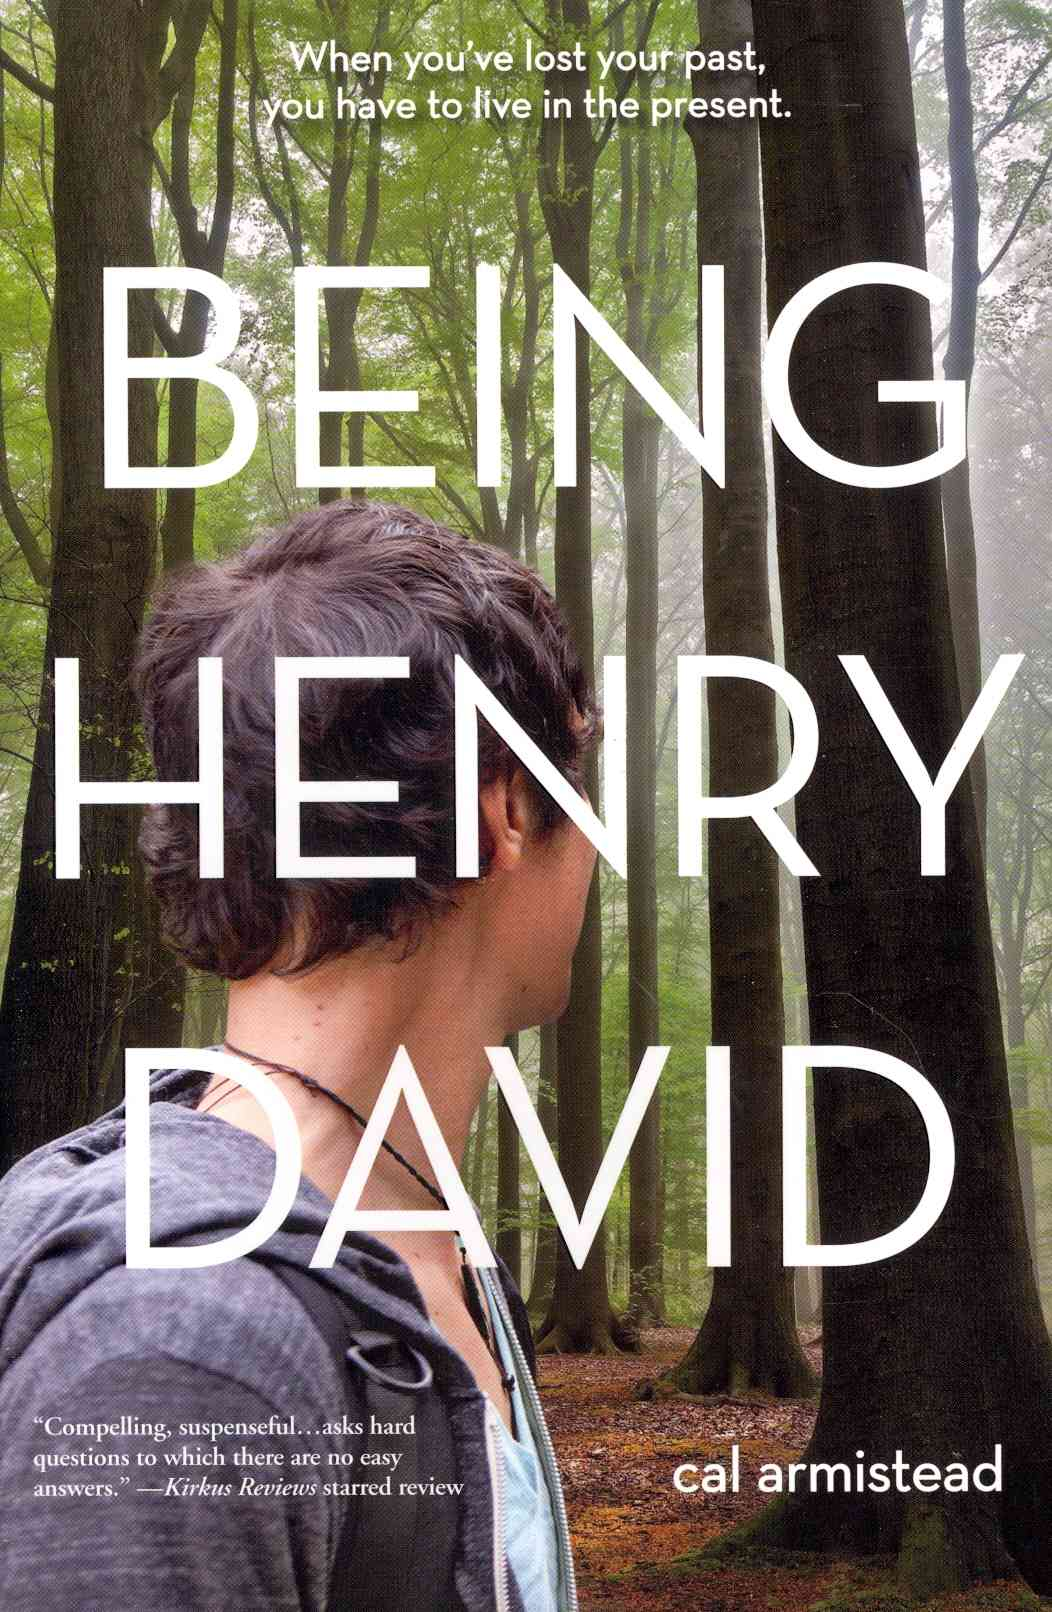 Being Henry David By Armistead, Cal